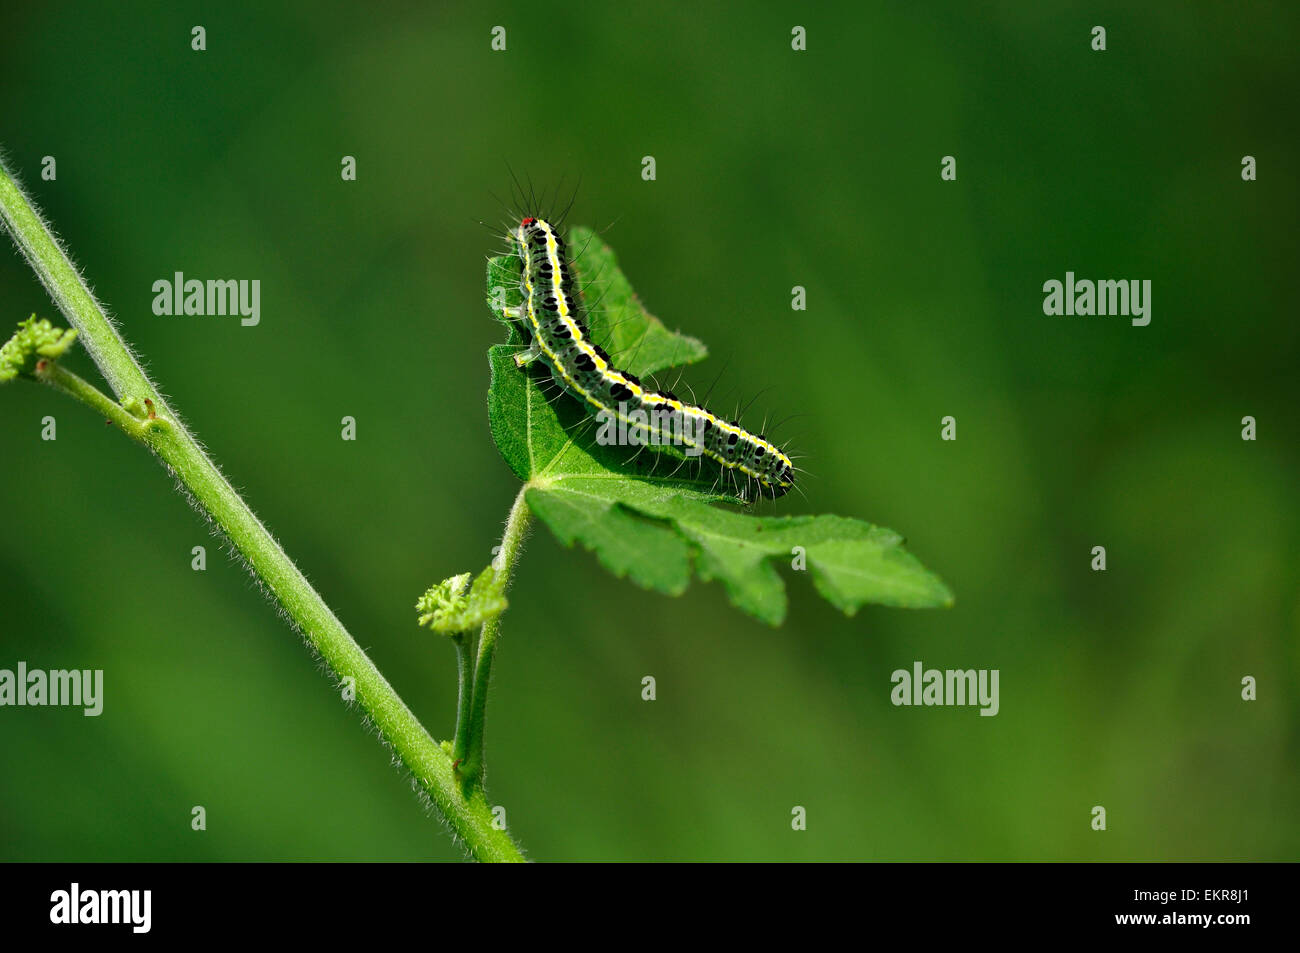 Green caterpillar - Stock Image